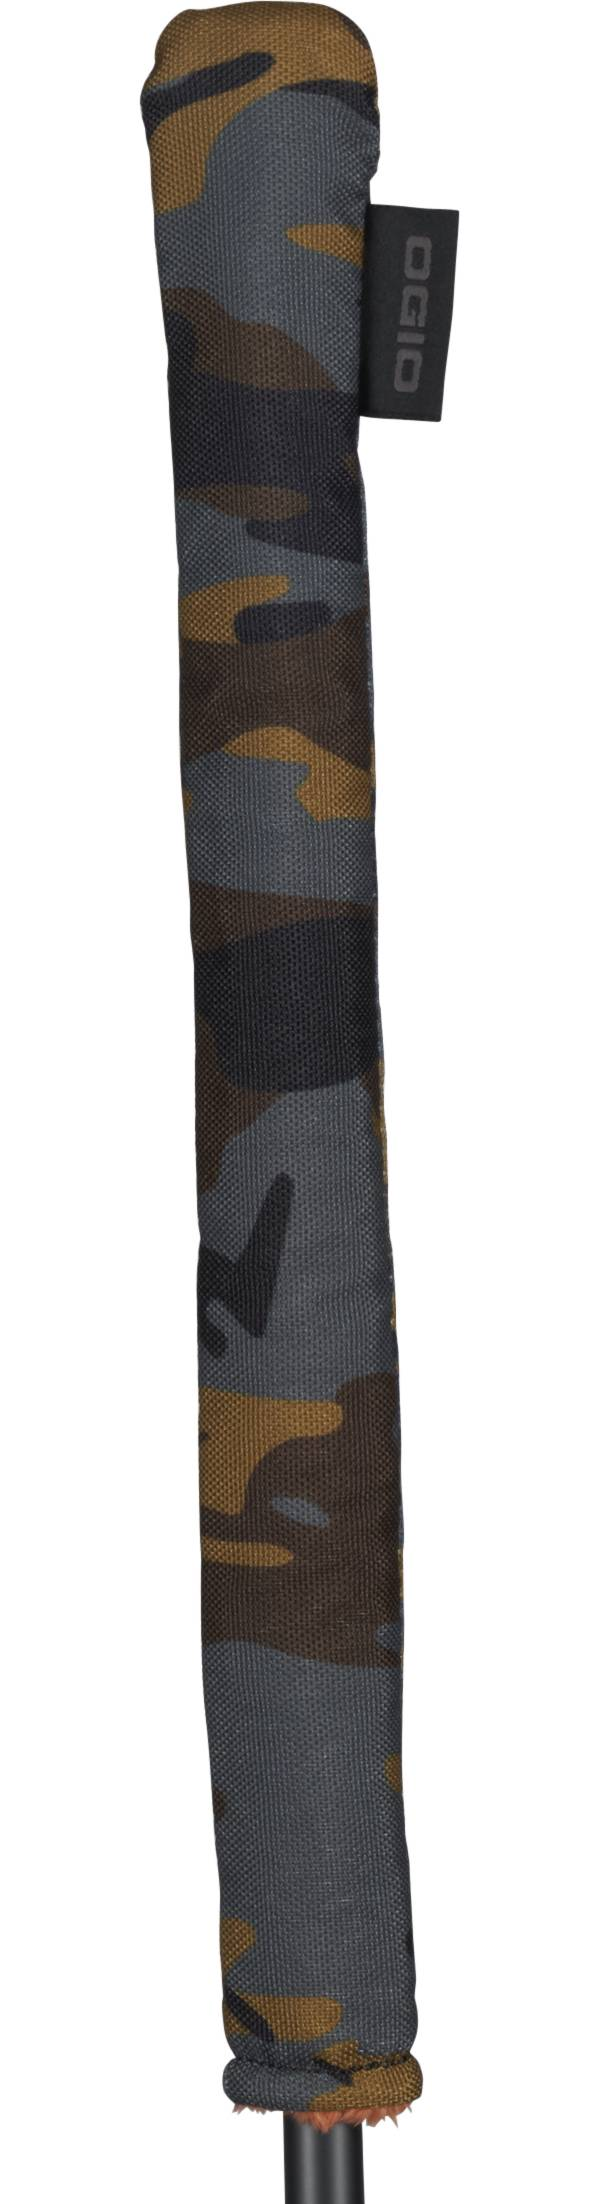 OGIO Alignment Stick Cover product image